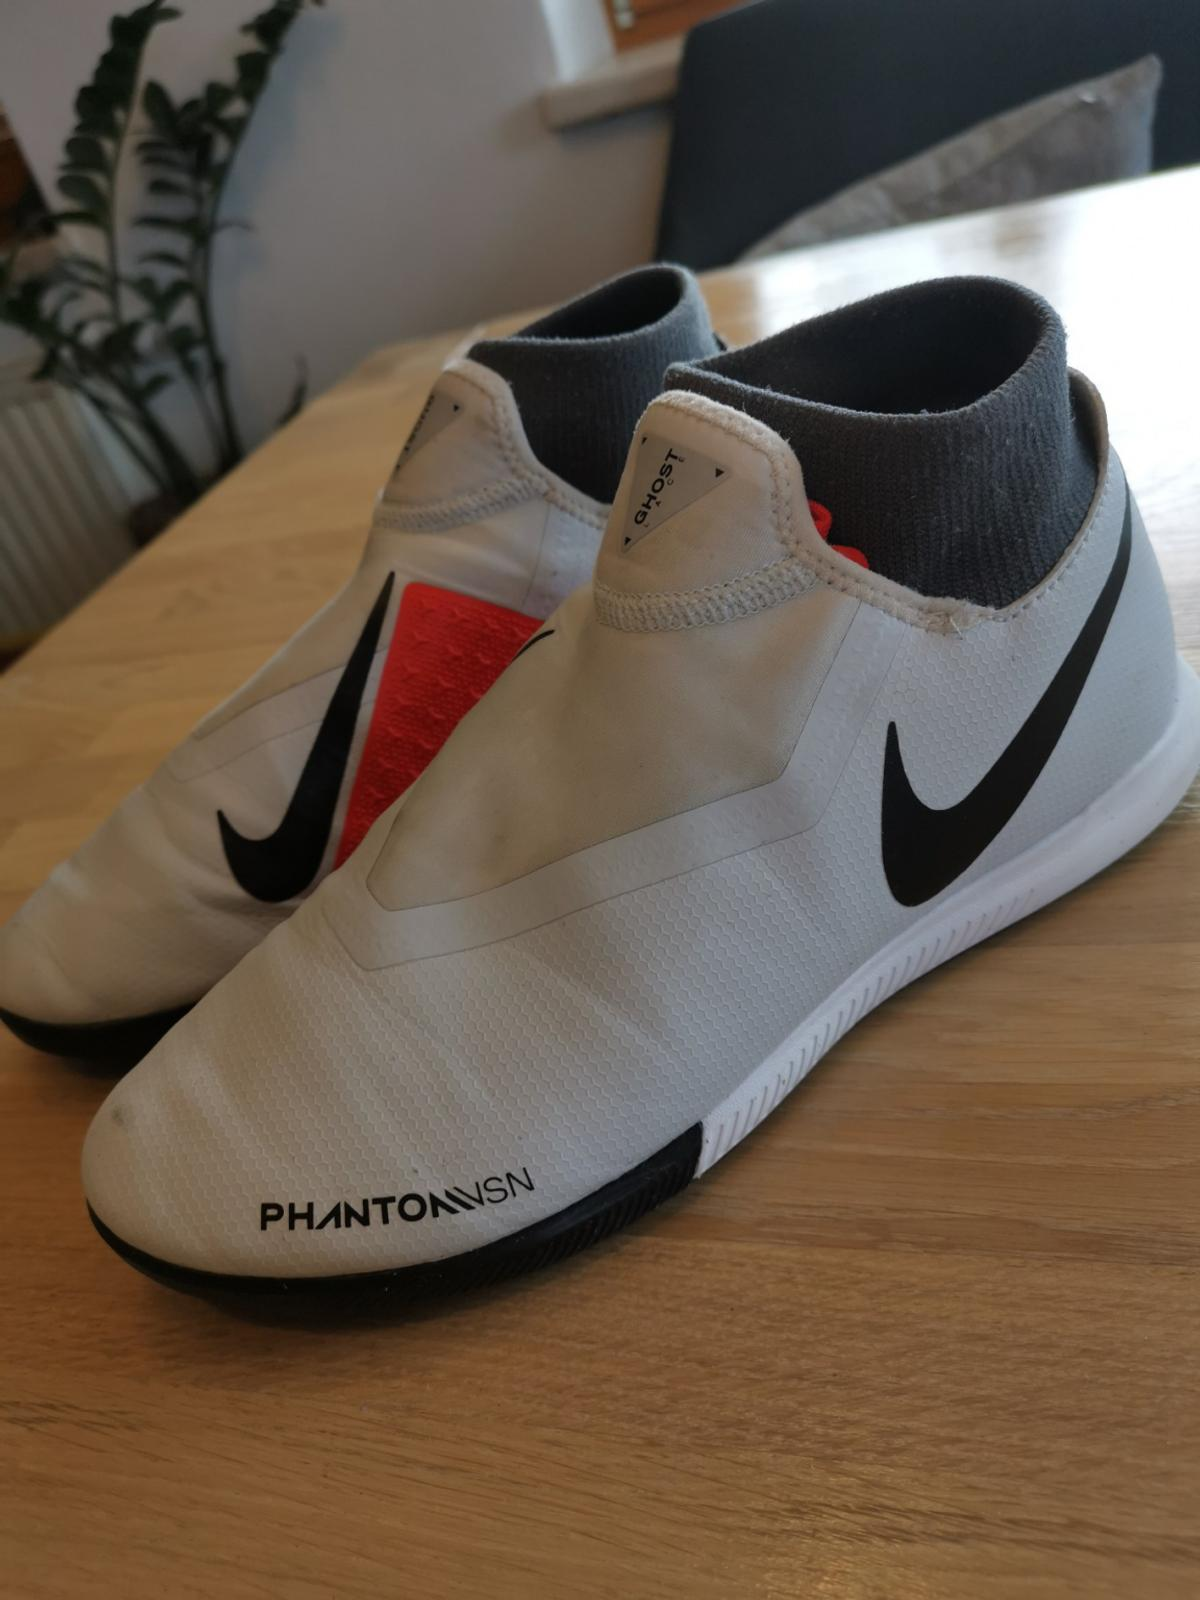 Fussball Hallenschuh Nike Ghost Lace Phantom